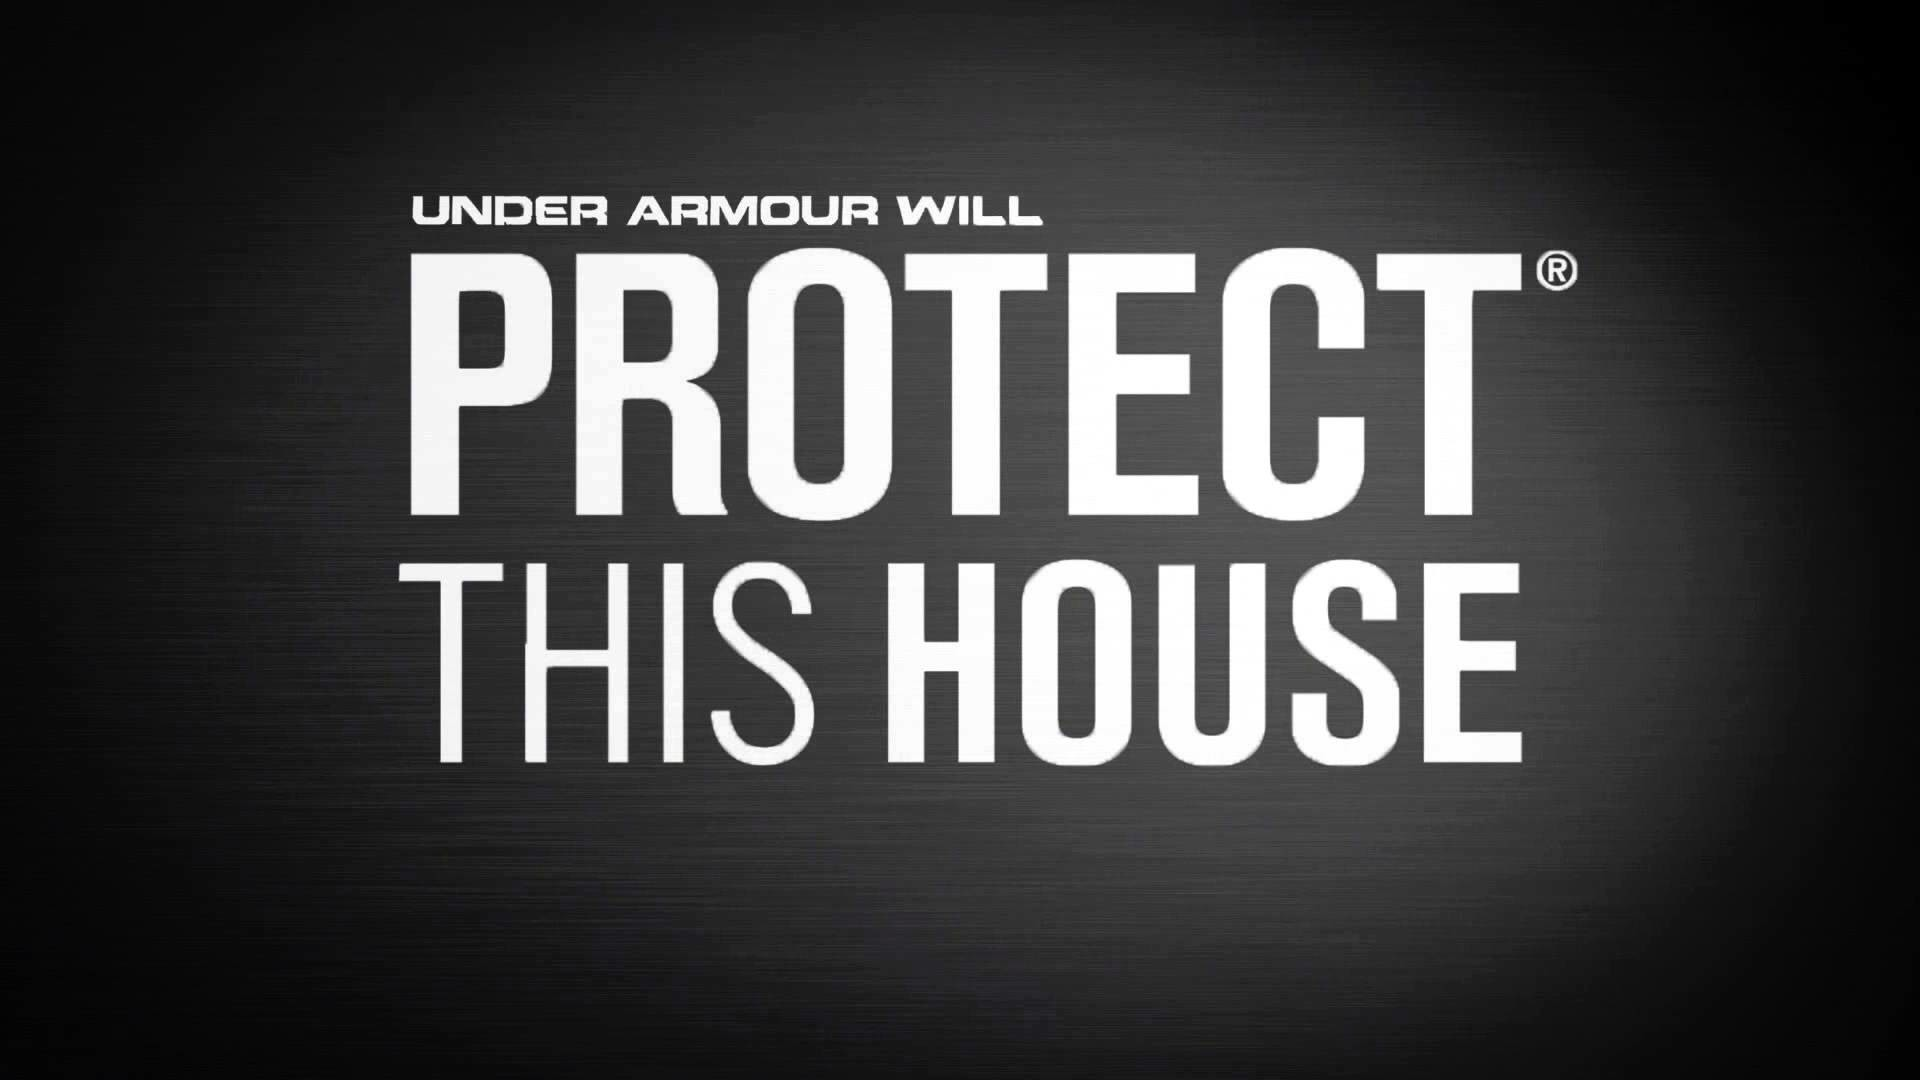 Under Armour Wallpaper Protect This House   galleryhip.com .